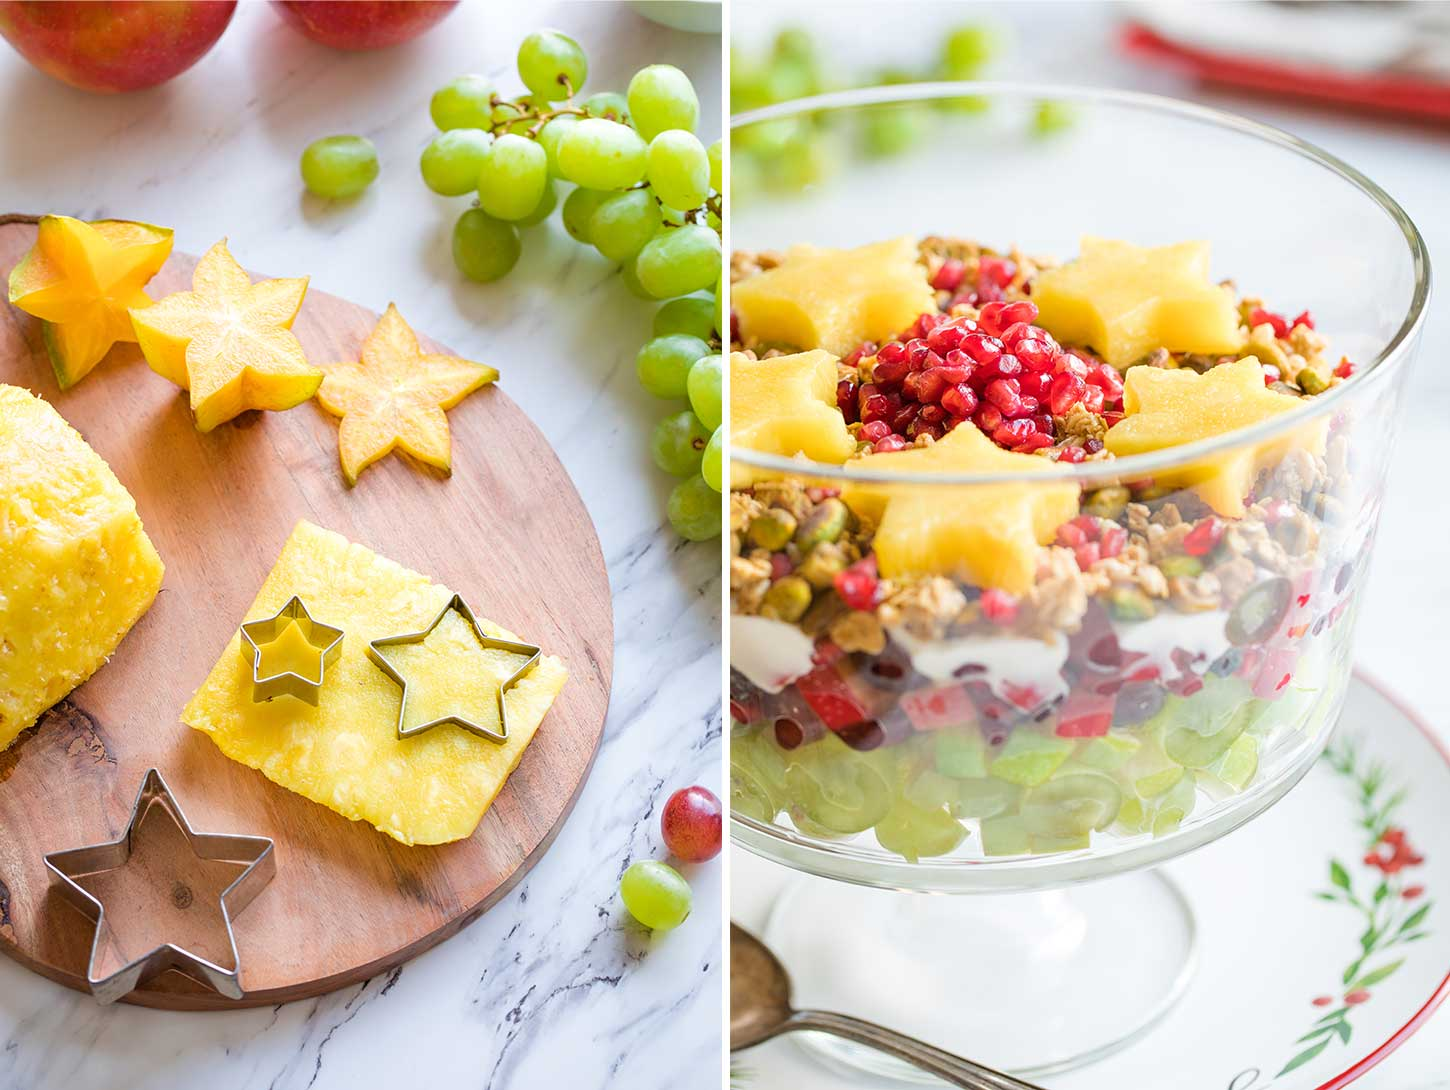 Collage of two photos, the first showing two ways of making the stars for the top of the fruit salad, and the second showing how the finished salad looks with pineapple stars.